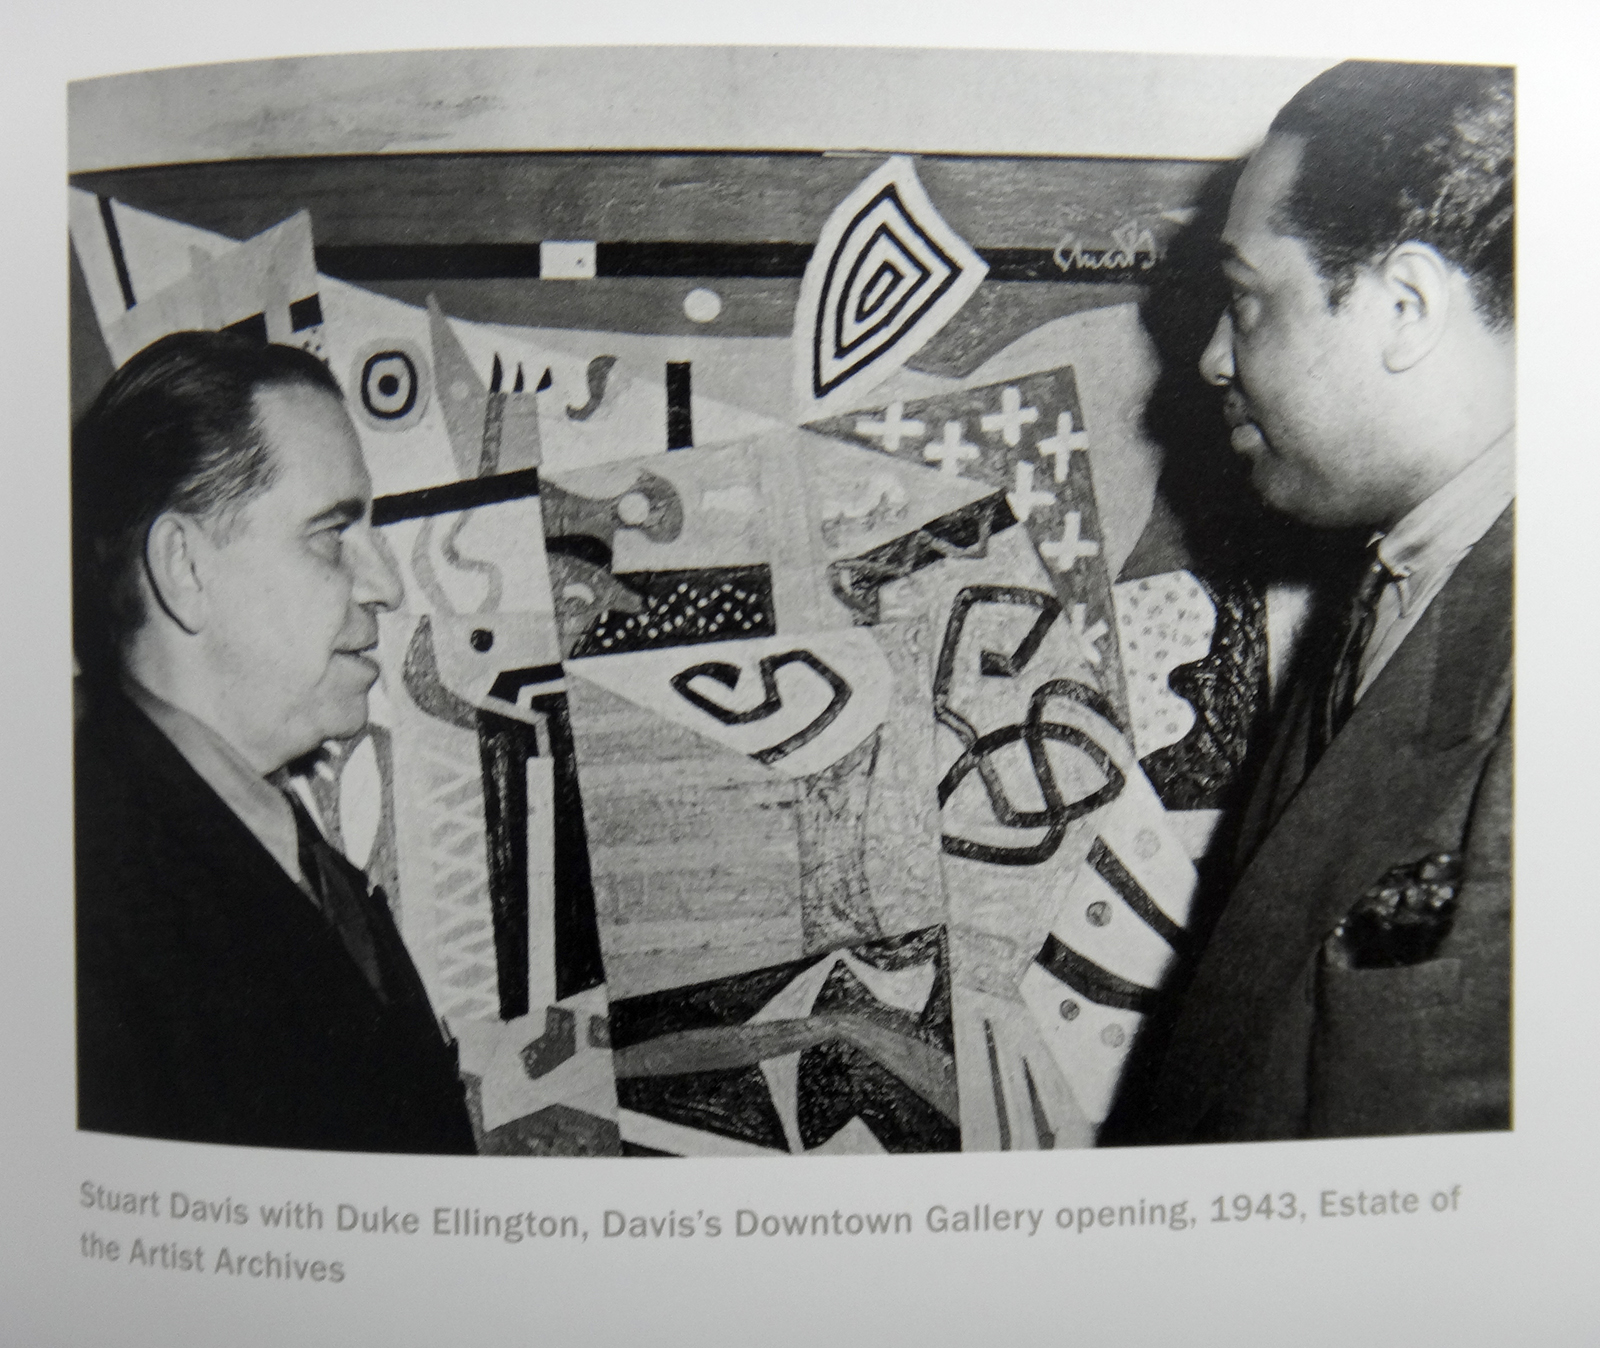 Stuart Davis with Duke Ellington, 1943, from the show's catalog.